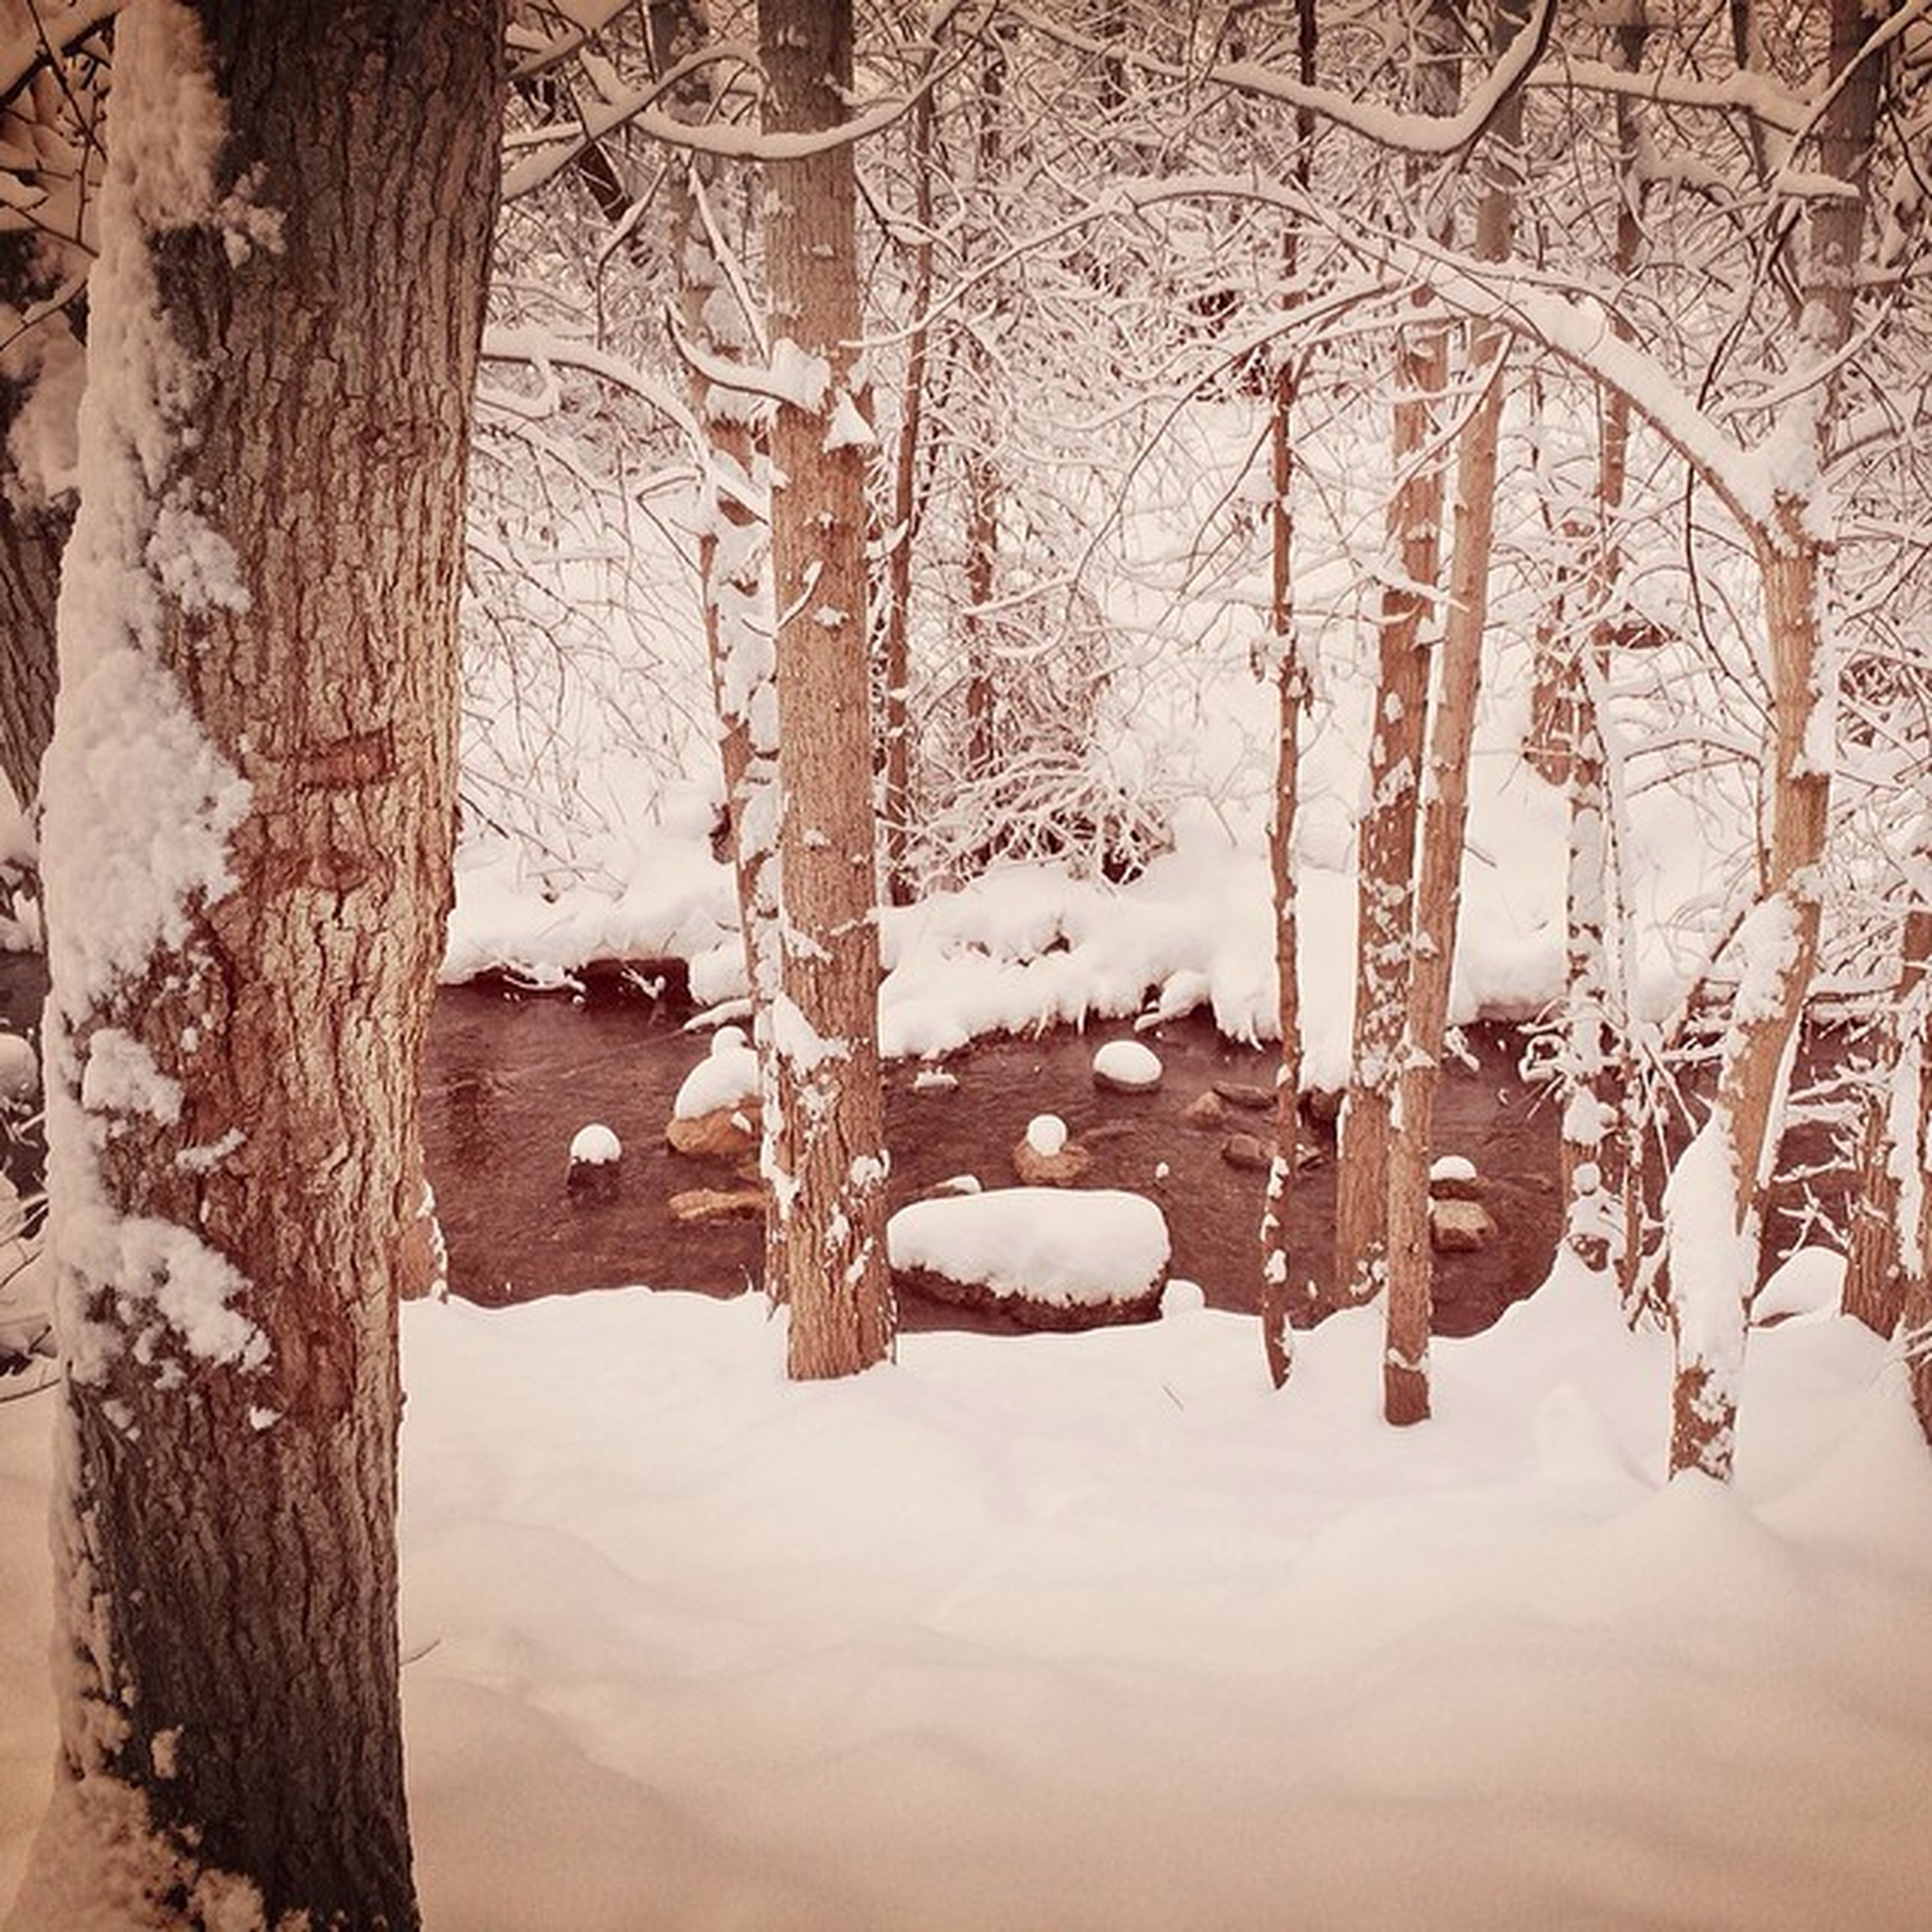 snow, winter, cold temperature, wood - material, tree trunk, tree, old, season, abandoned, built structure, wooden, weathered, indoors, covering, white color, weather, damaged, day, no people, run-down